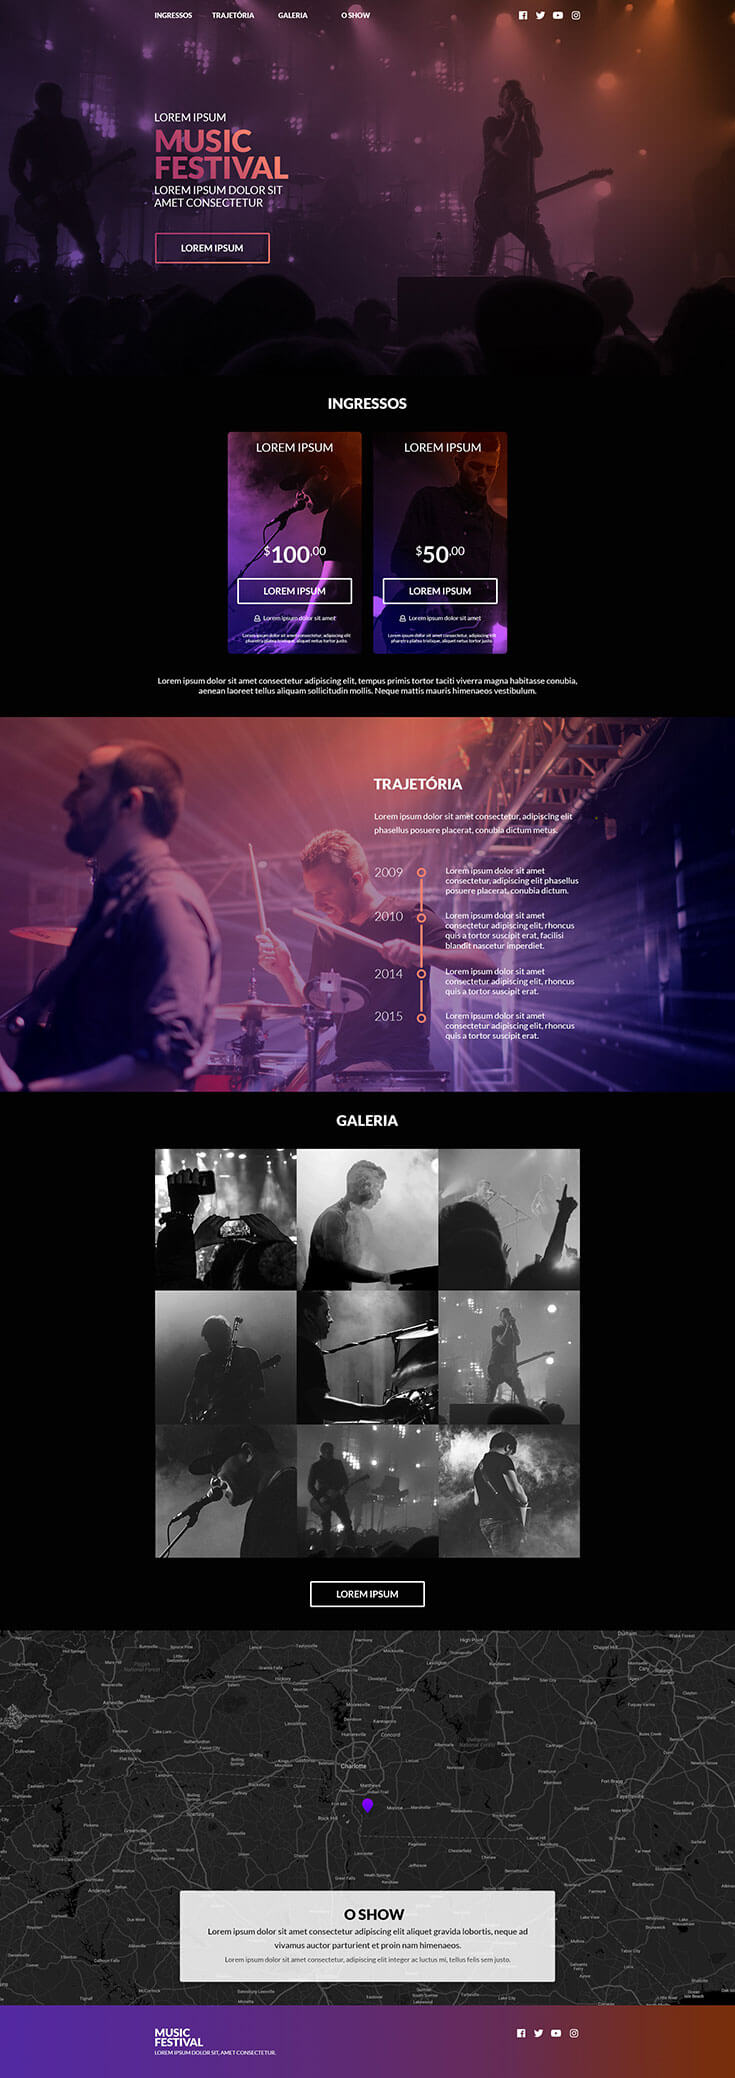 Free #Music #Festival #Website Template is a nice and simple music festival website template designed and released by Maísa Leepkaln. It comes in PSD format with clean and dark color design. It comes with a nice overall design and color scheme. You can use website study for a music festival.